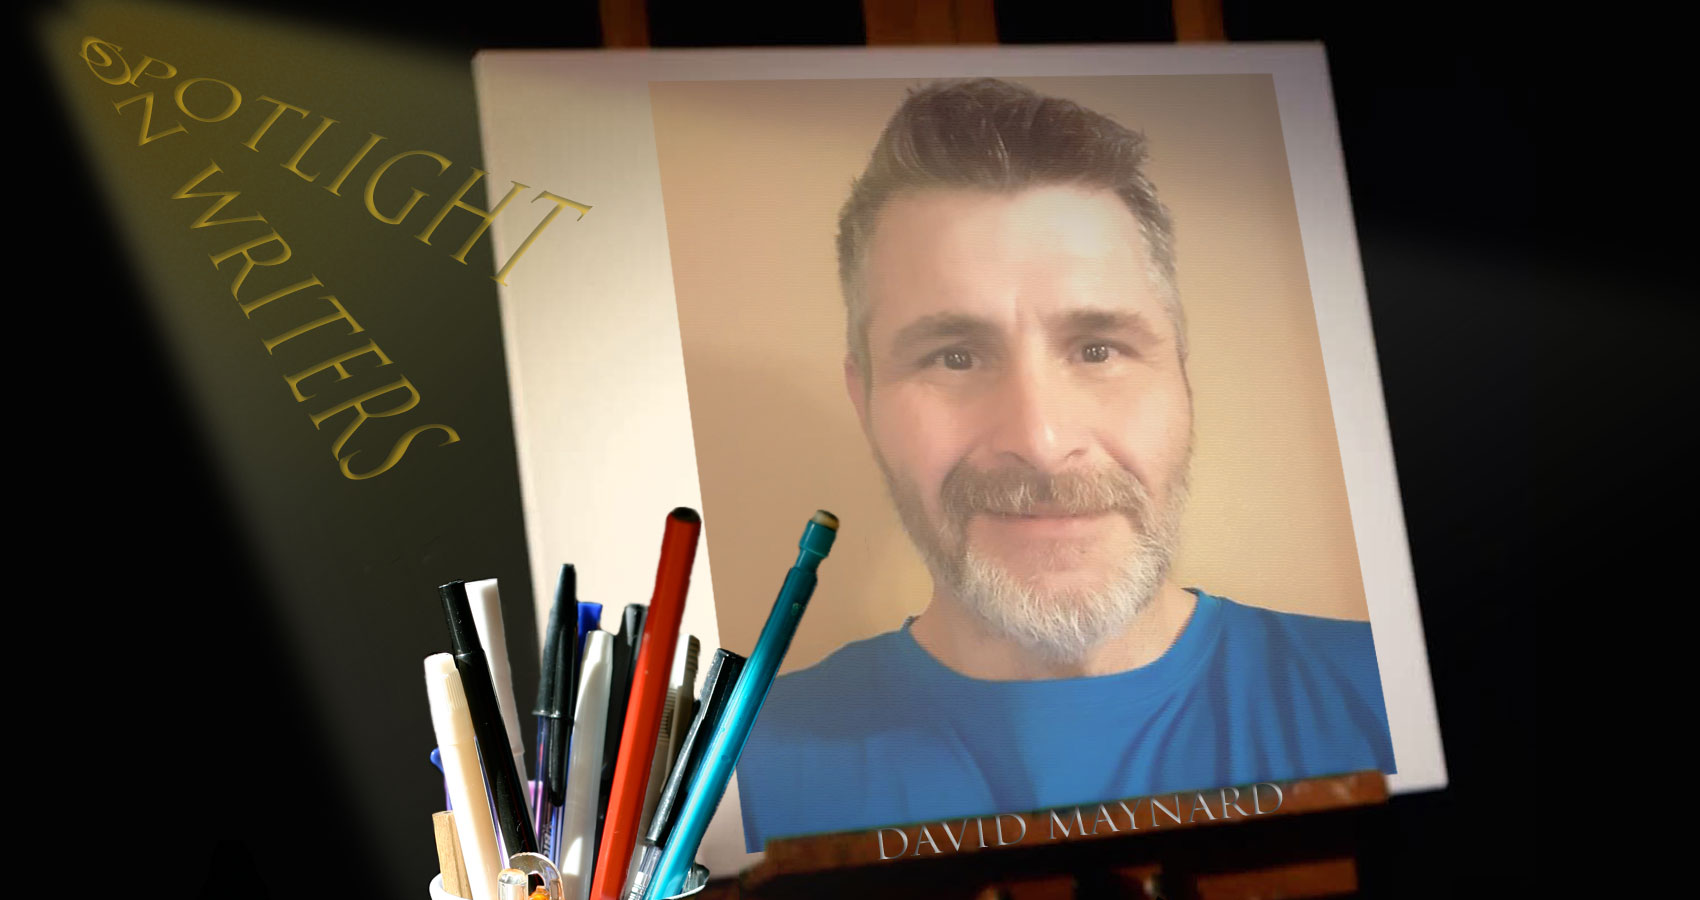 Spotlight On Writers - David Maynard, interview at Spillwords.com